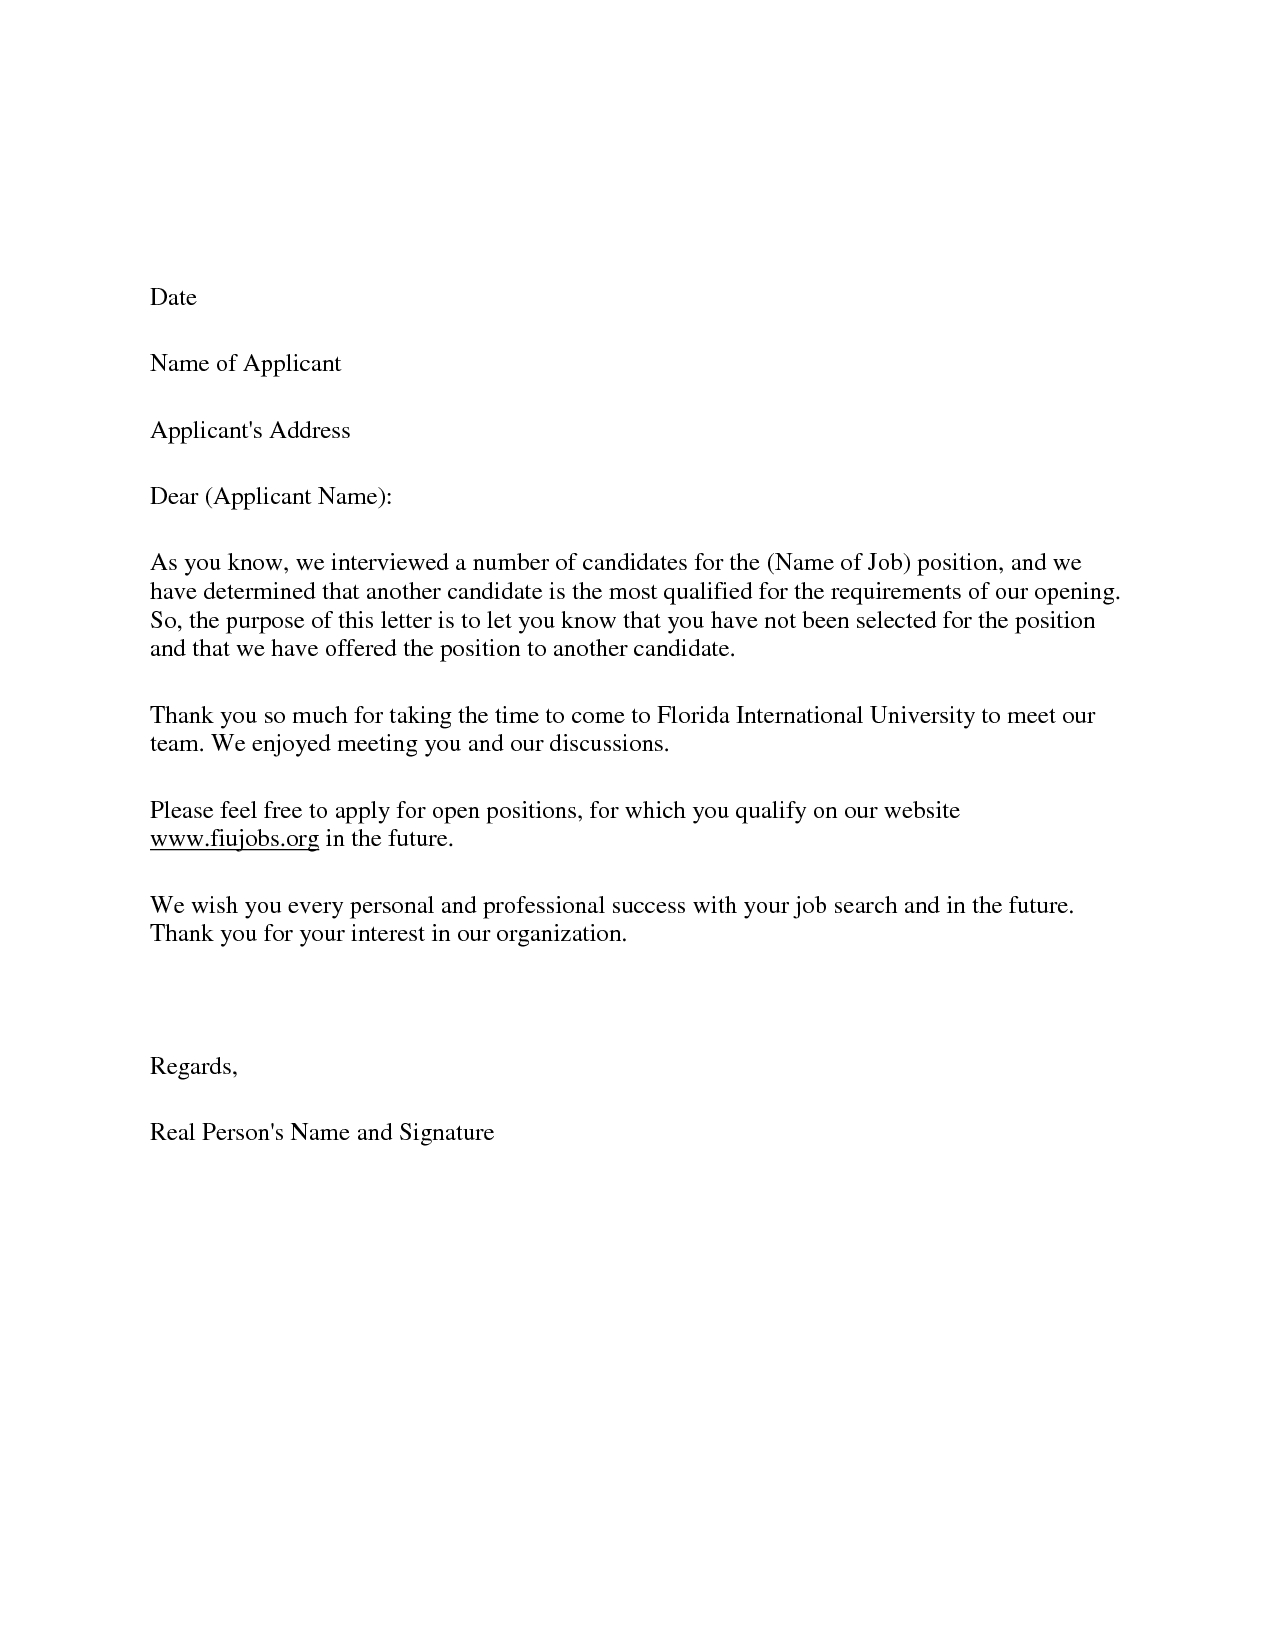 Employment Rejection Letter Template - Candidate Decline Letter Employers Of Choice Send Rejection